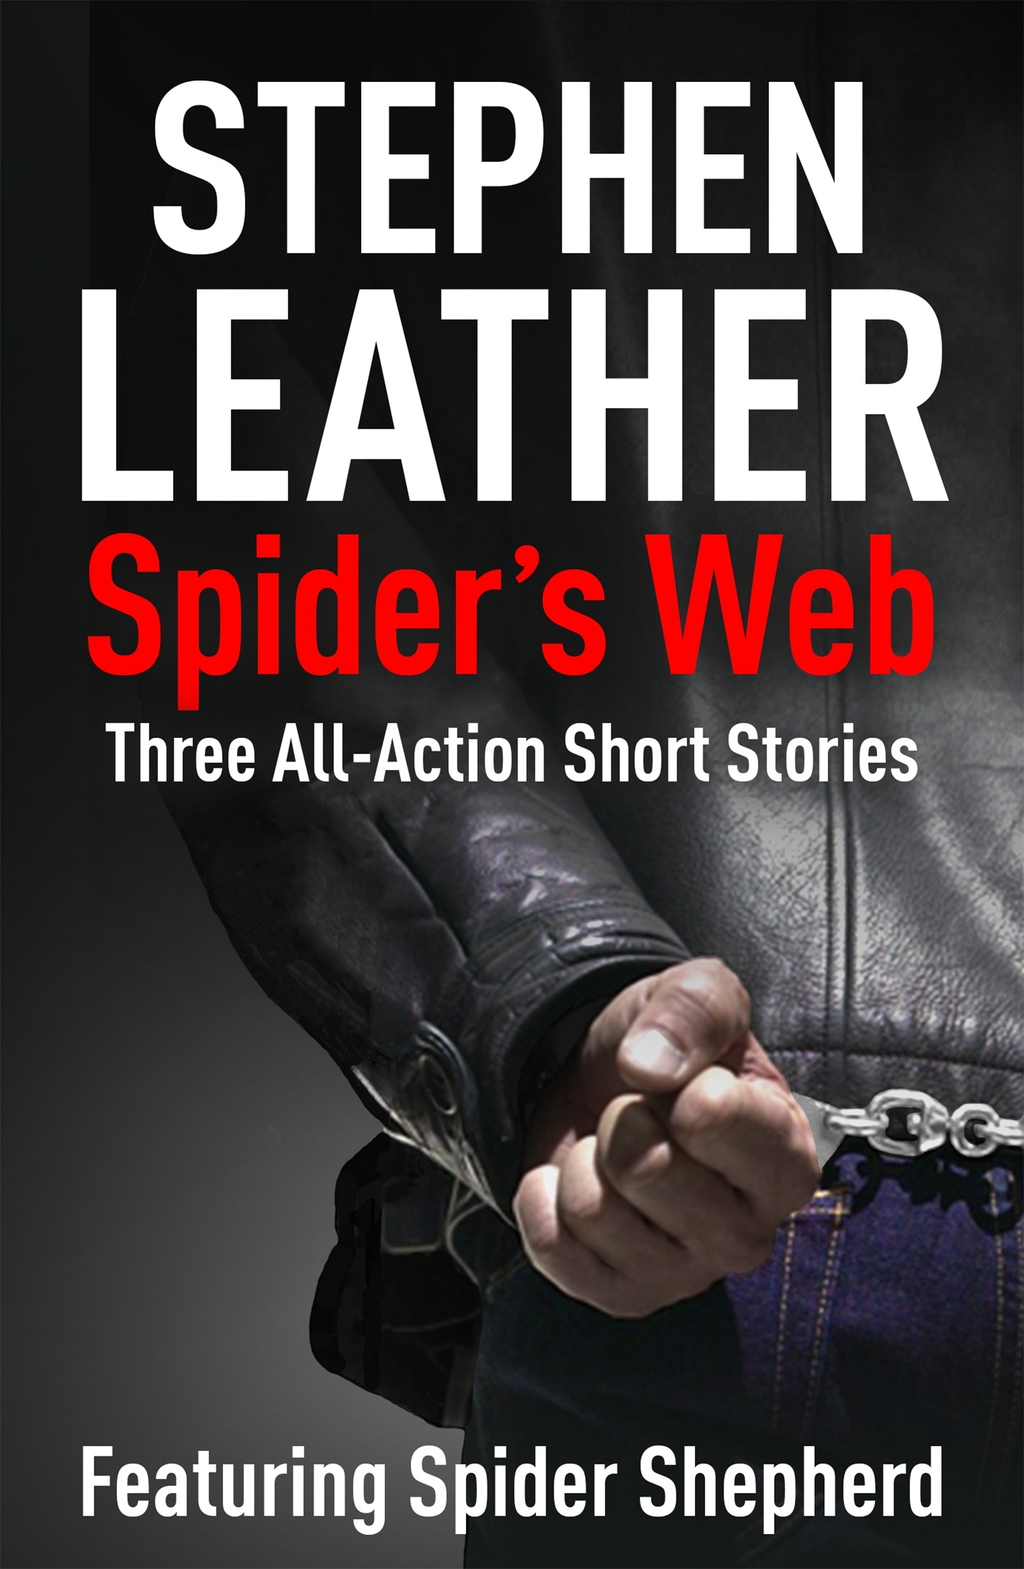 Spider's Web A Collection of All-Action Short Stories